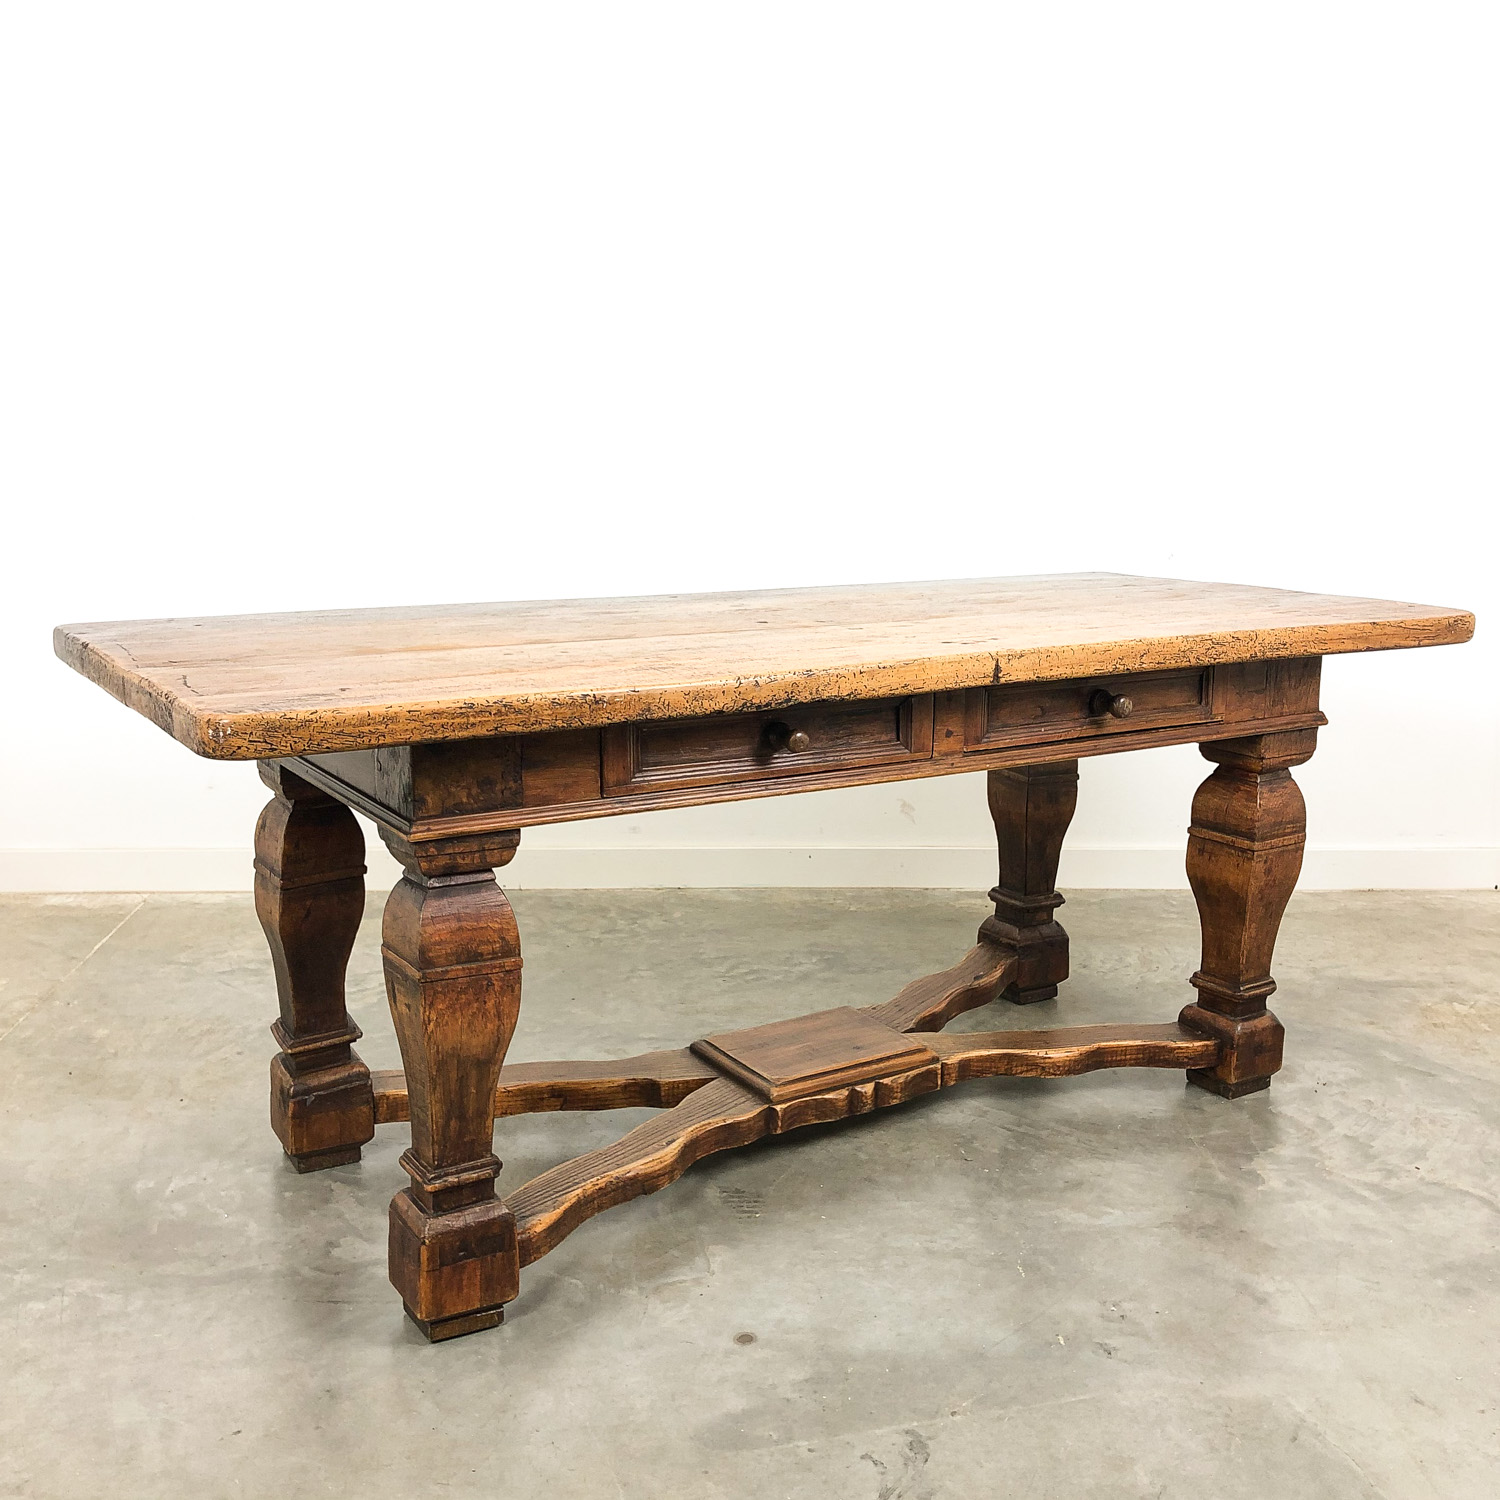 Swedish antique late 19th century Baroque style table